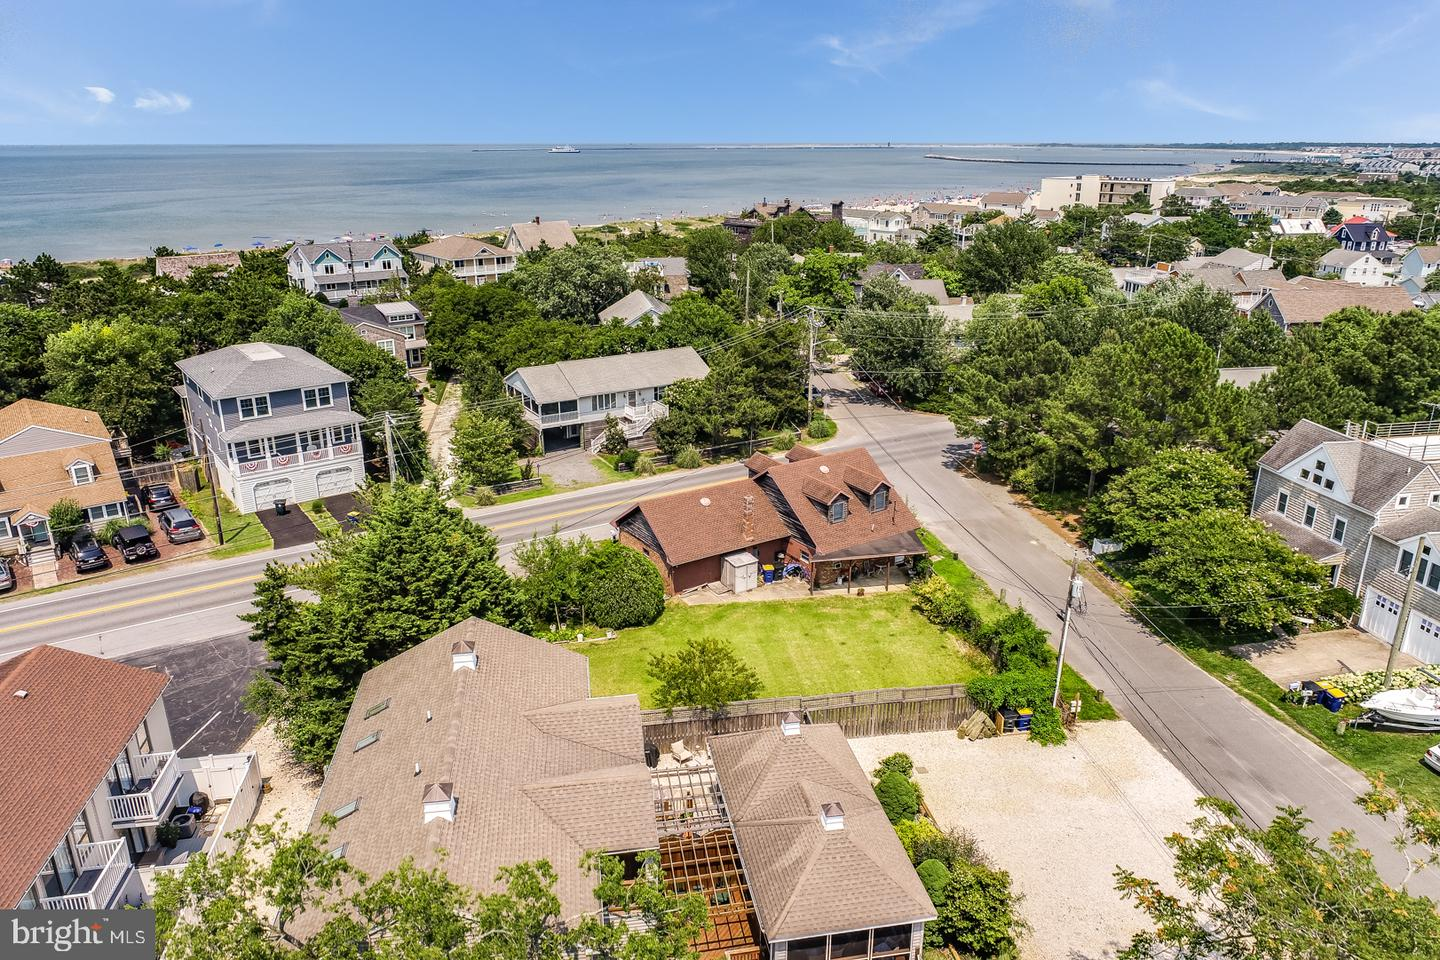 DESU2001916-800843053870-2021-07-14-22-17-45 Single Family Homes for Sale in Rehoboth Beach, Lewes, and More - Rehoboth Beach Real Estate - Bryce Lingo and Shaun Tull REALTORS, Rehoboth Beach, Delaware